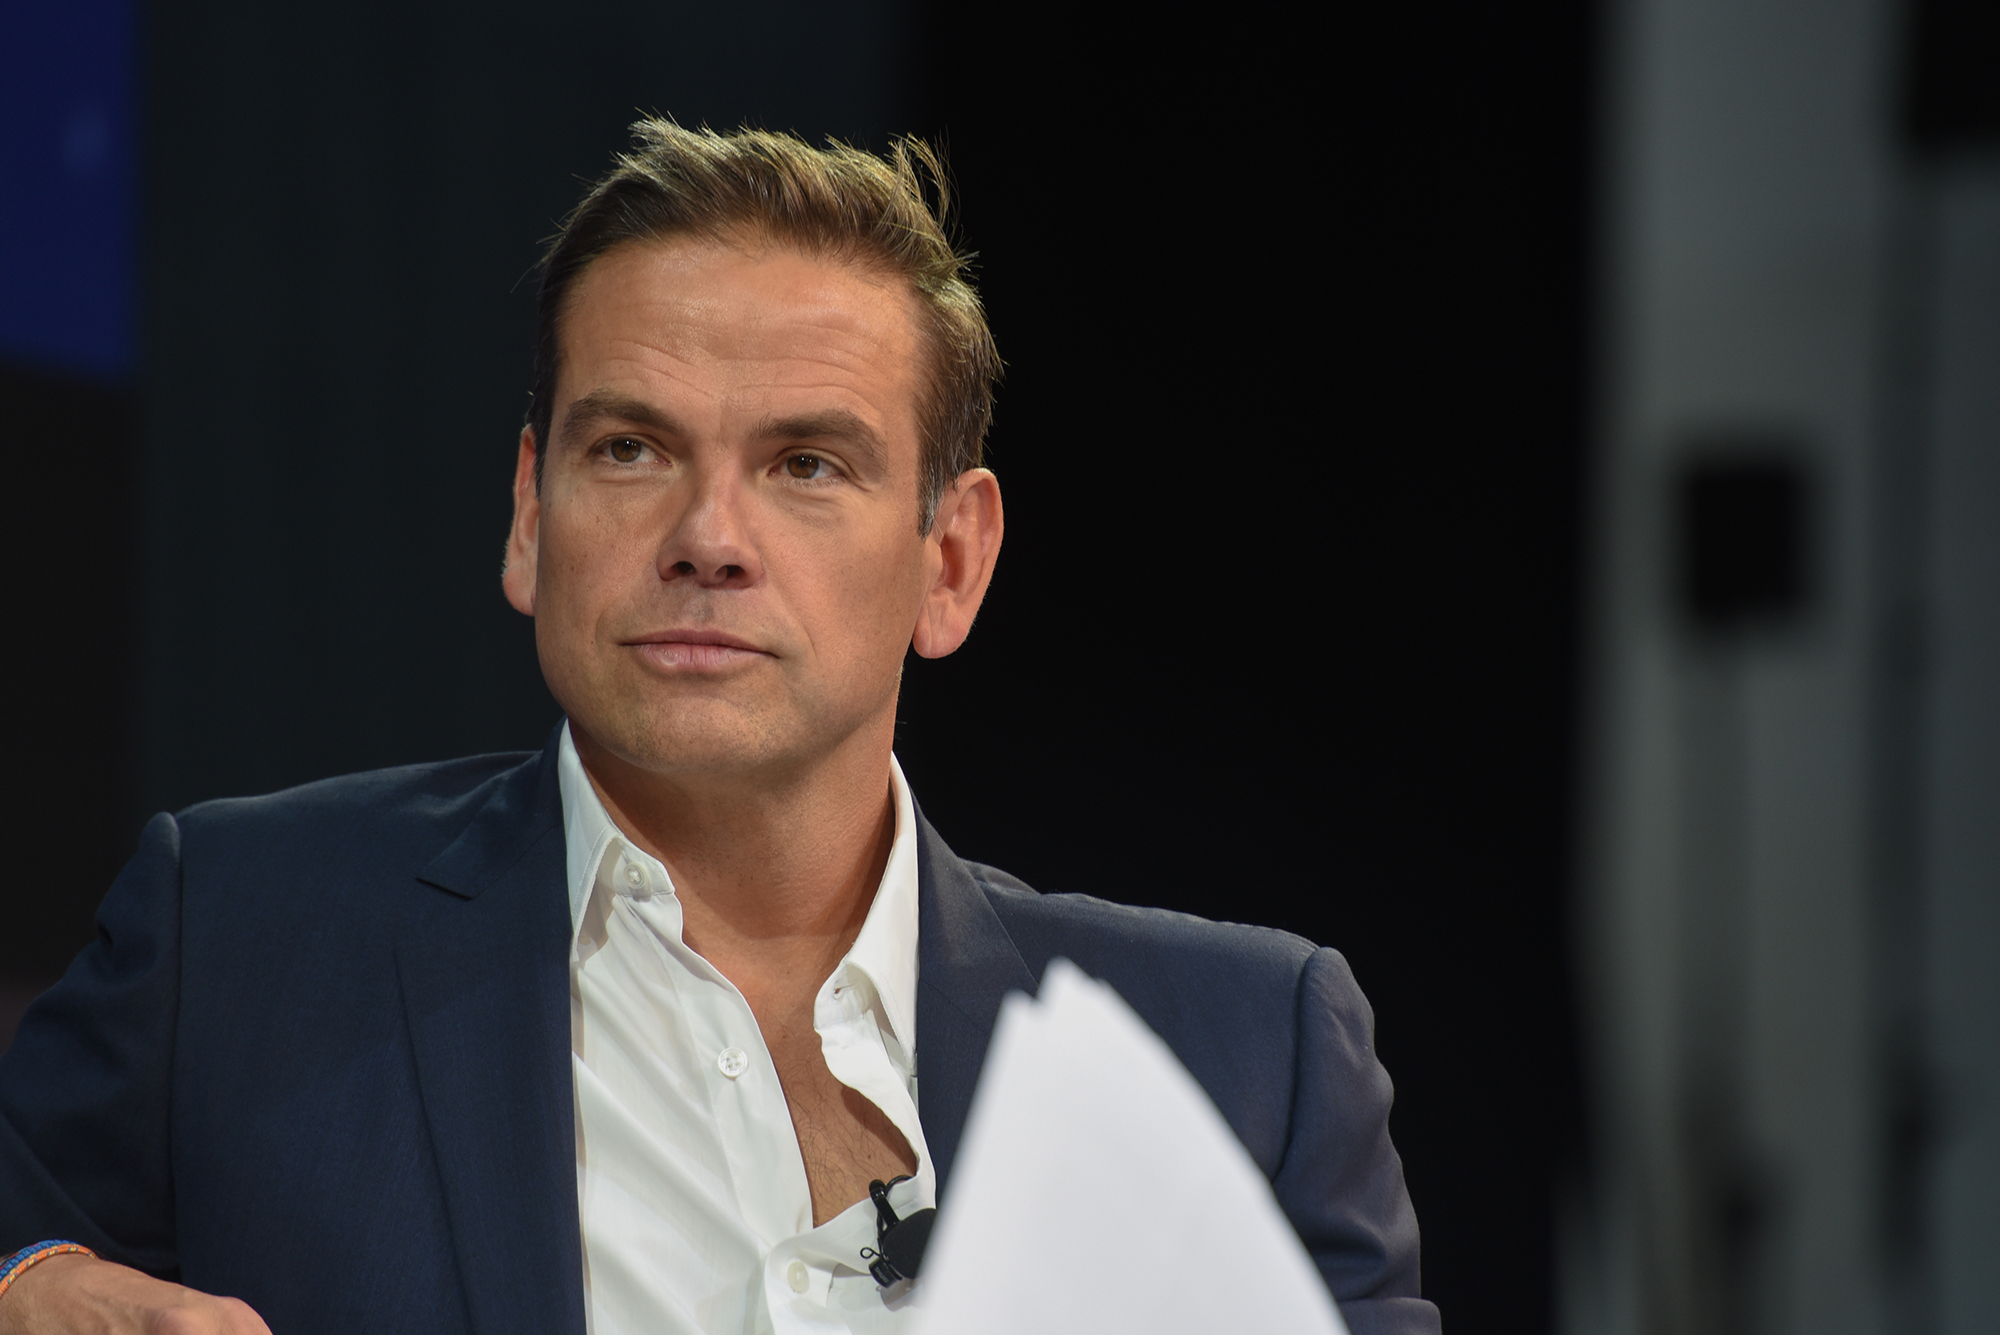 Lachlan Murdoch dismisses ADL complaint, says Fox sees no problem with Tucker Carlson's 'replacement theory' remarks